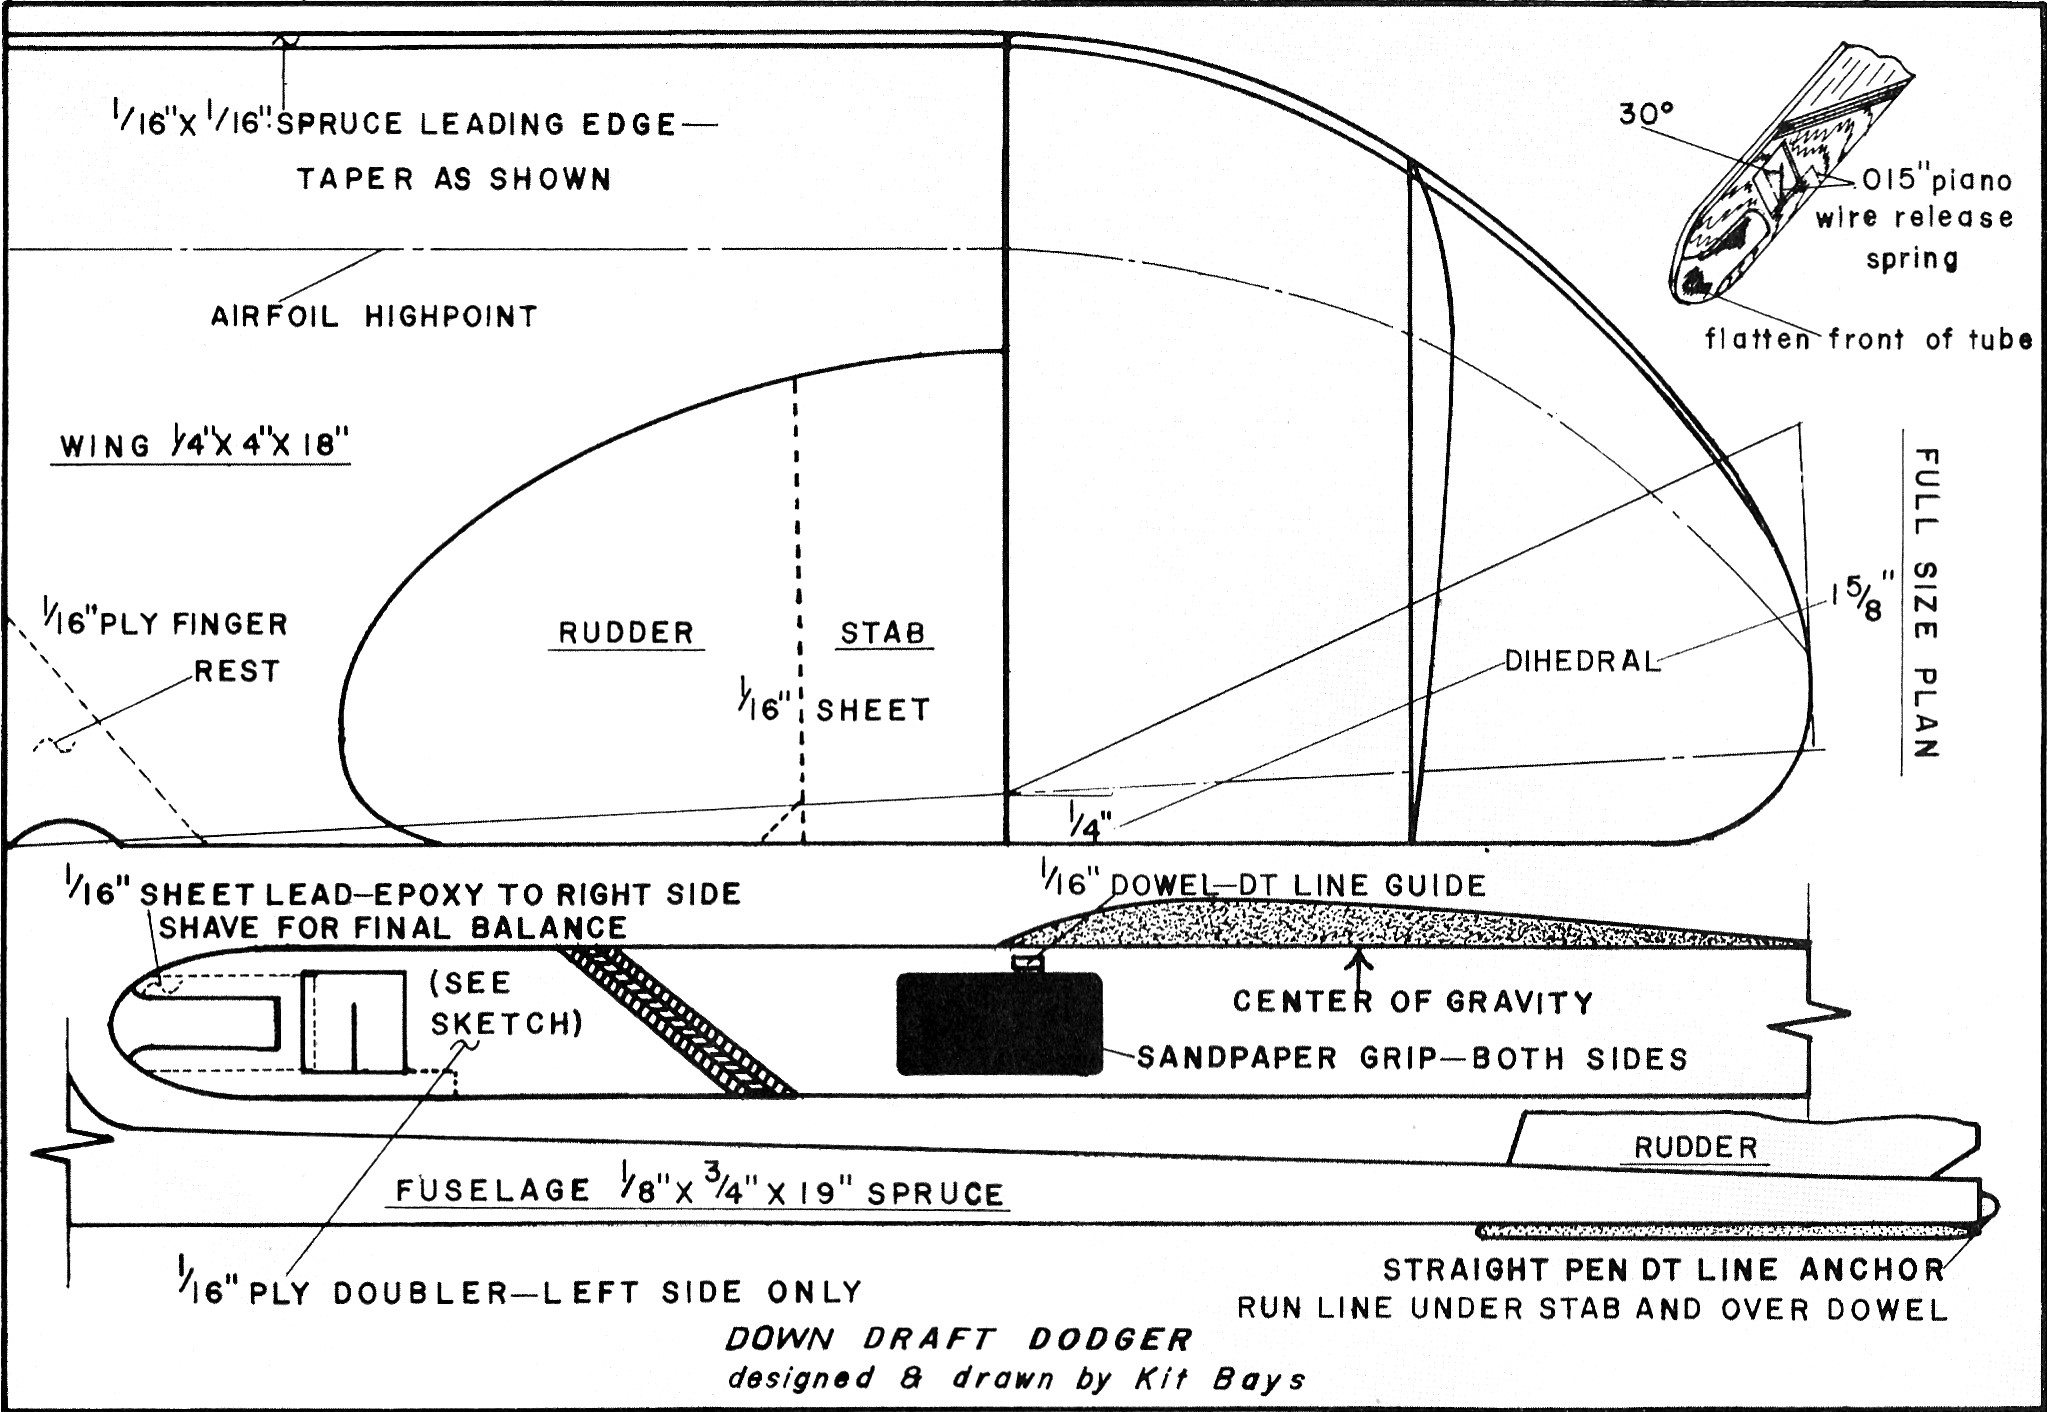 Funky Fly By Wire Aircraft Image - Schematic diagram and wiring ...